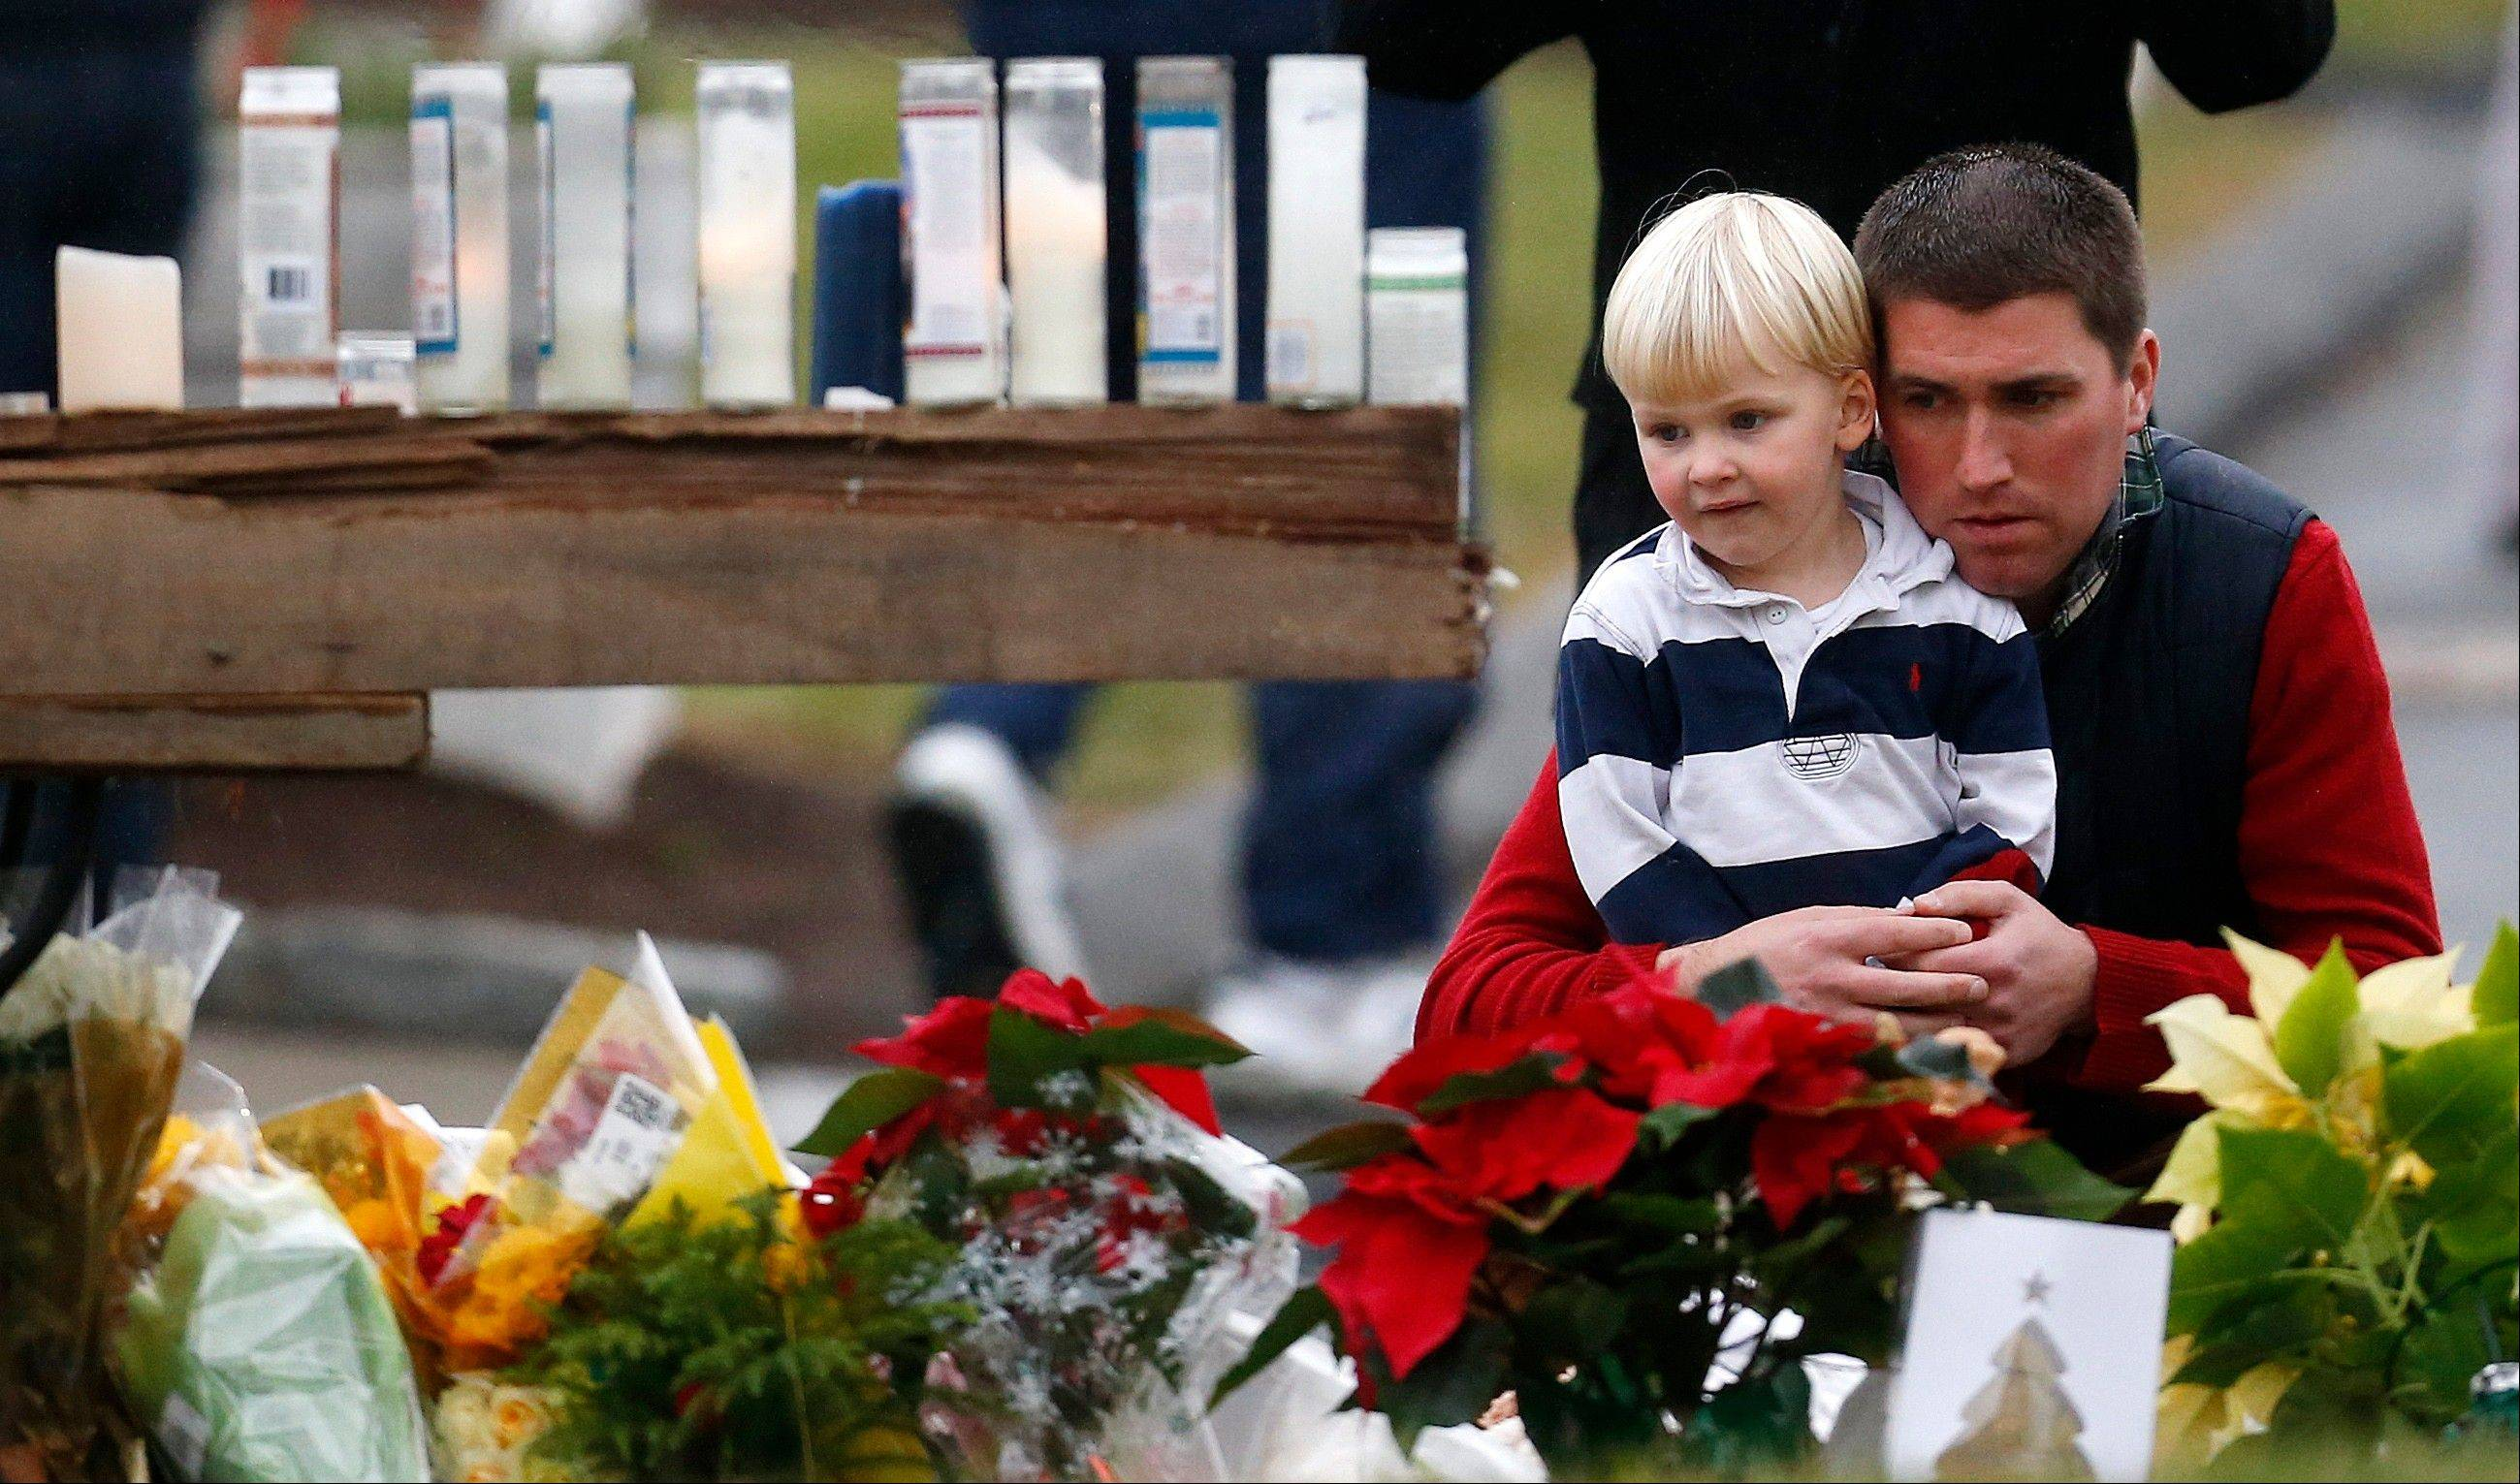 A man holds a child while paying respects to shooting victims at a makeshift memorial outside of St. Rose of Lima Roman Catholic Church, Sunday, Dec. 16, 2012, in Newtown, Conn. On Friday, a gunman killed his mother at their home and then opened fire inside the Sandy Hook Elementary School in Newtown, killing 26 people, including 20 children.